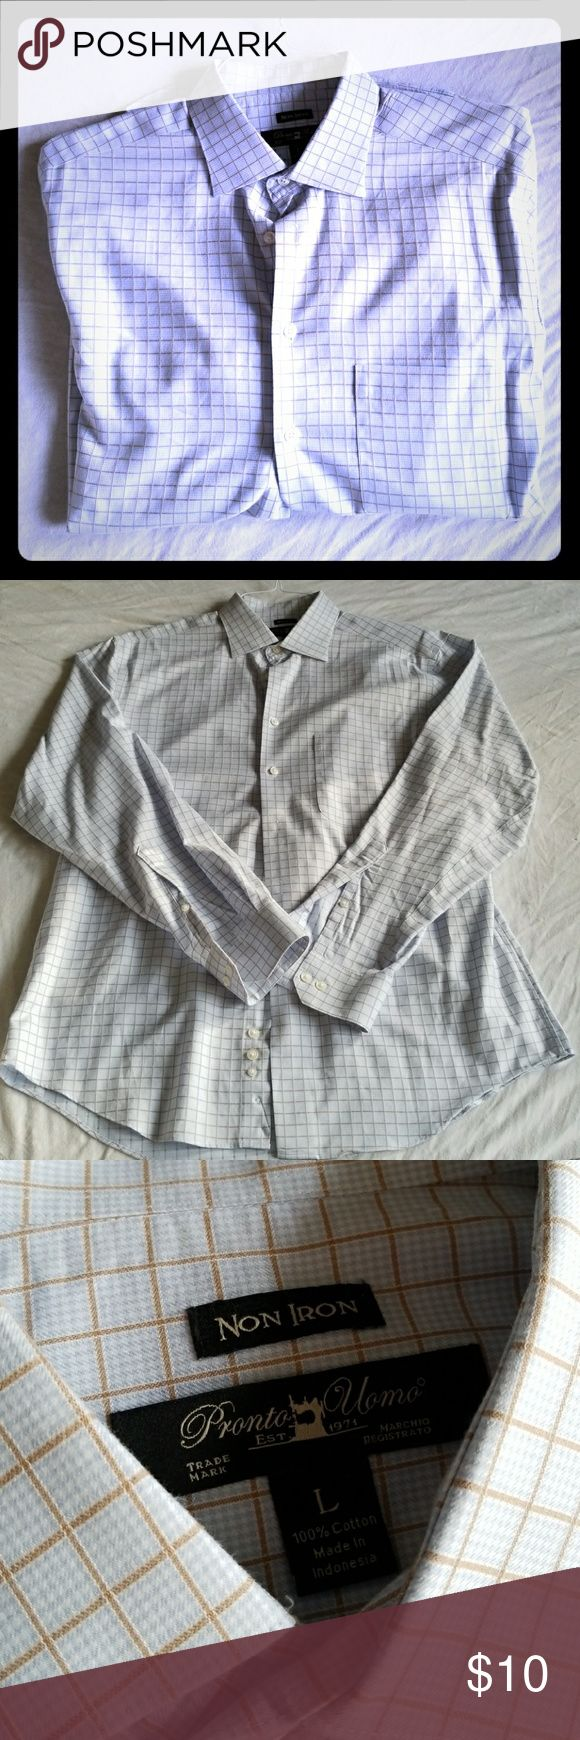 Men's long sleeve non iron shirt Long sleeve non iron. Never worn NEW without tags. Perfect! This is non iron so it doesn't wrinkle and keeps creases Pronto Uomo Shirts Dress Shirts